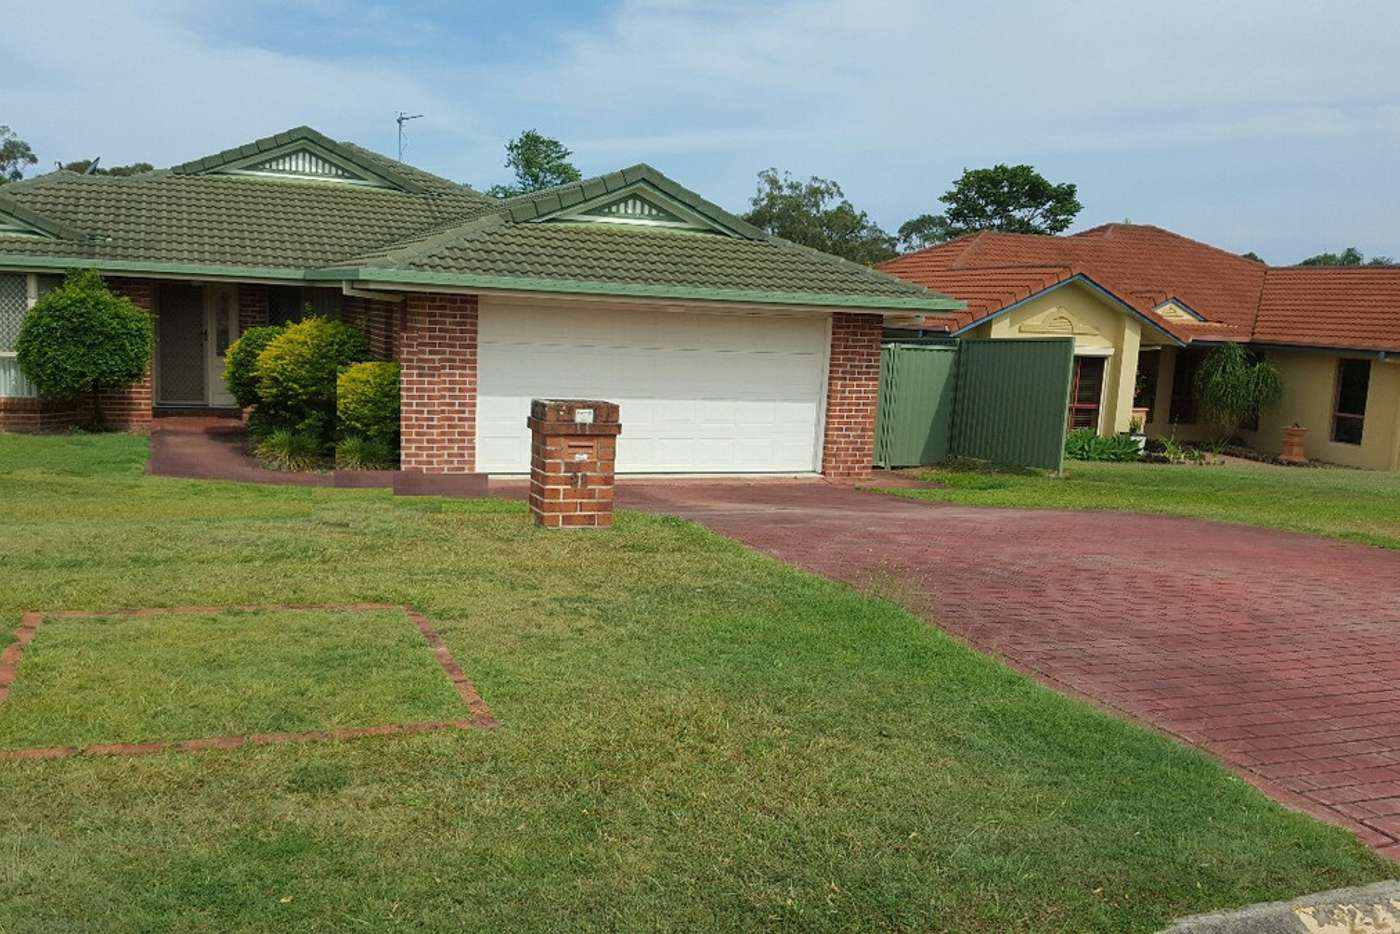 Main view of Homely house listing, 22 Maidstone Place, Parkwood QLD 4214